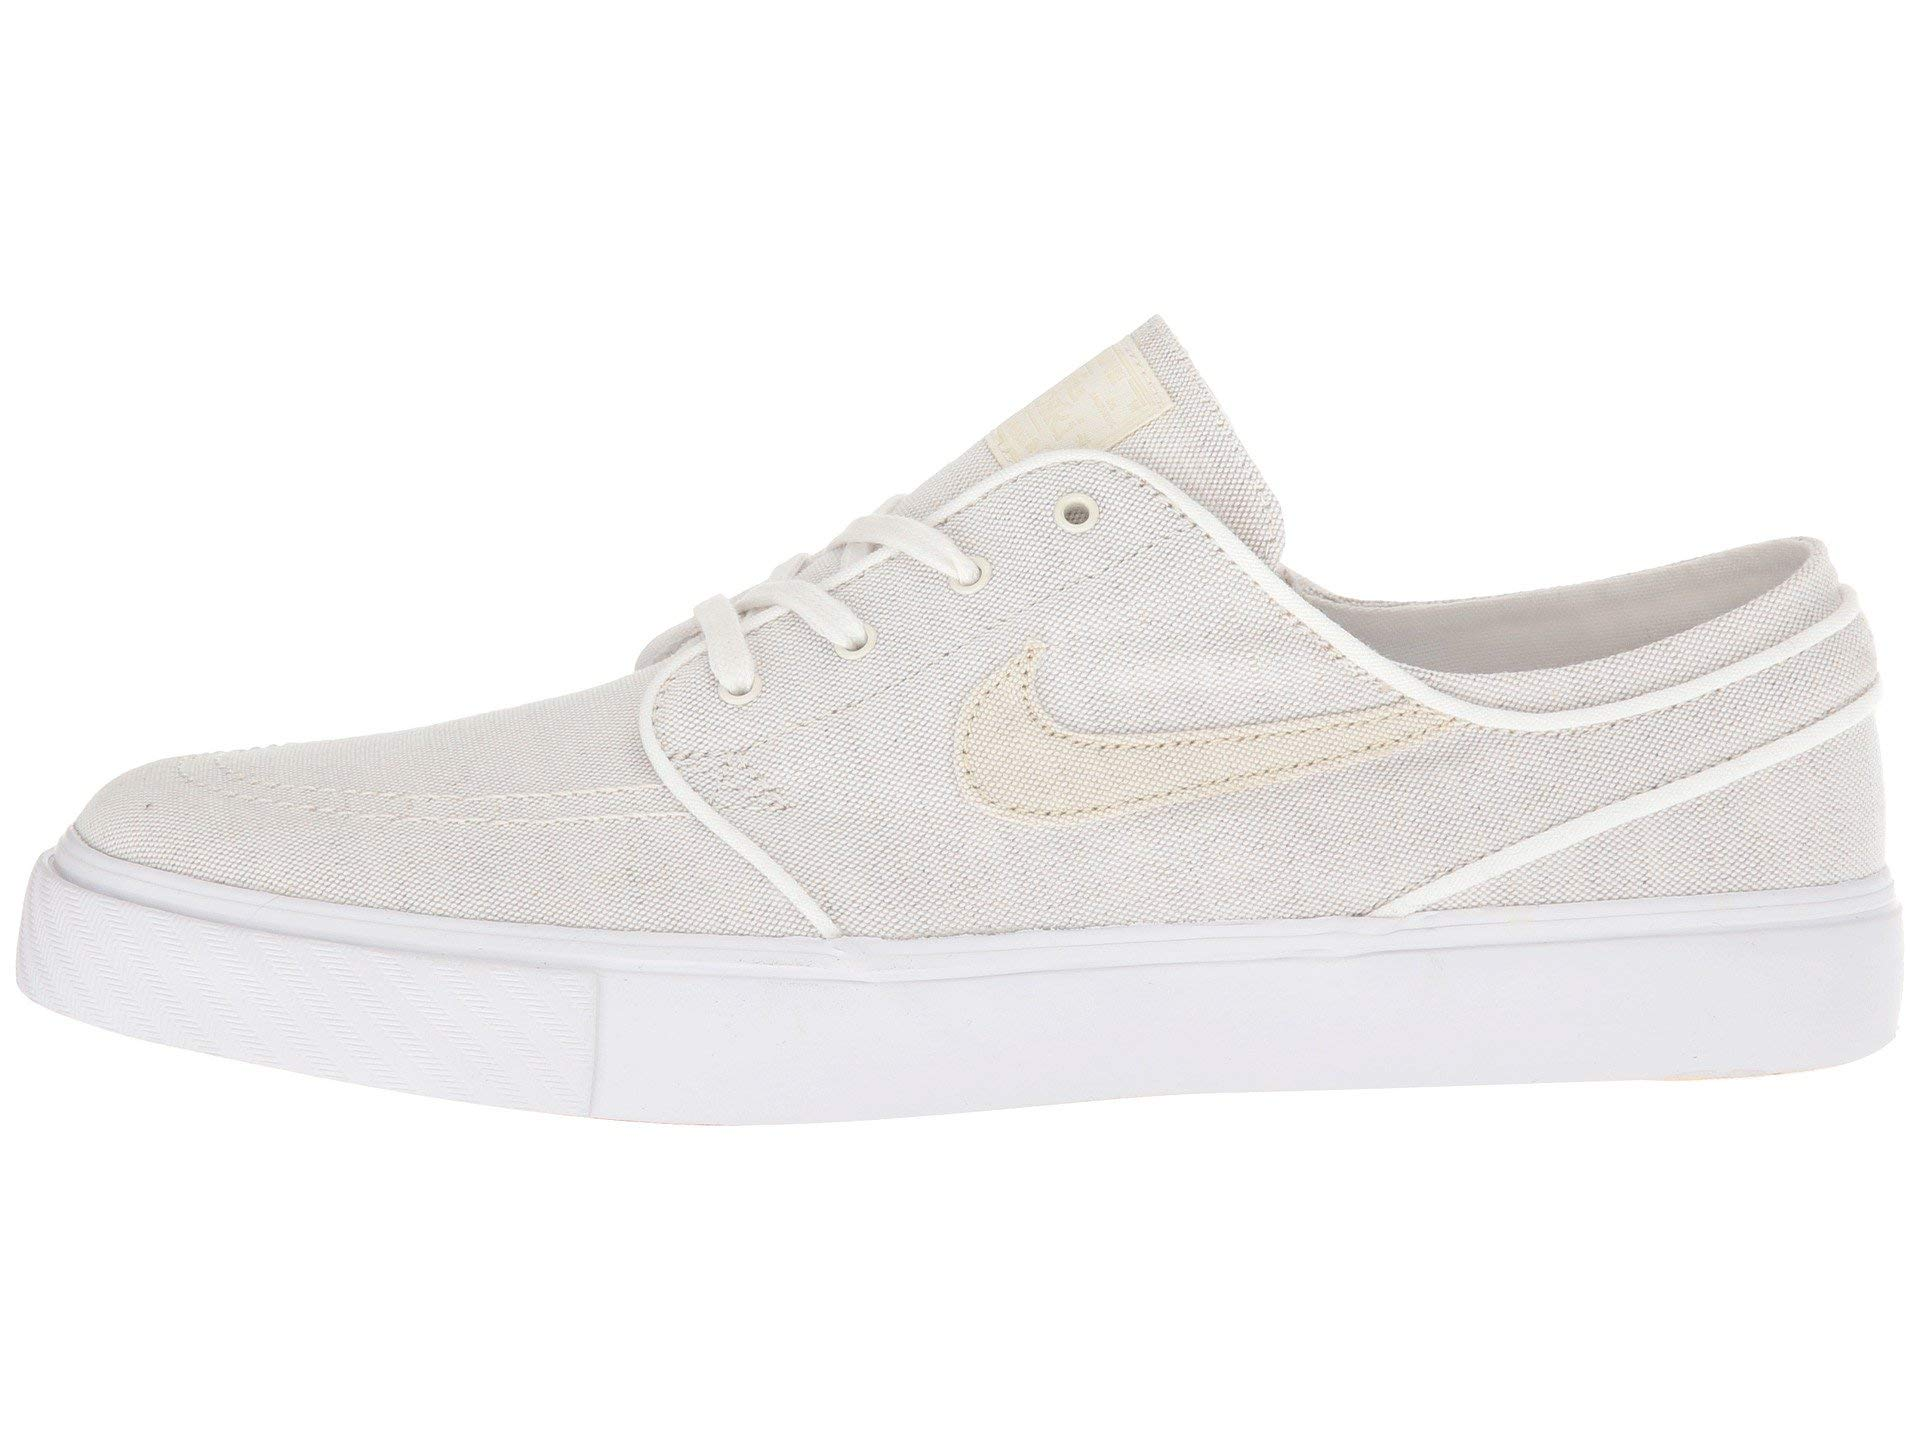 b88a4db391e Galleon - NIKE Men SB Zoom Stefan Janoski Canvas Deconstructed Skate Shoes  Sail Fossil-Vintage Coral (11.5)